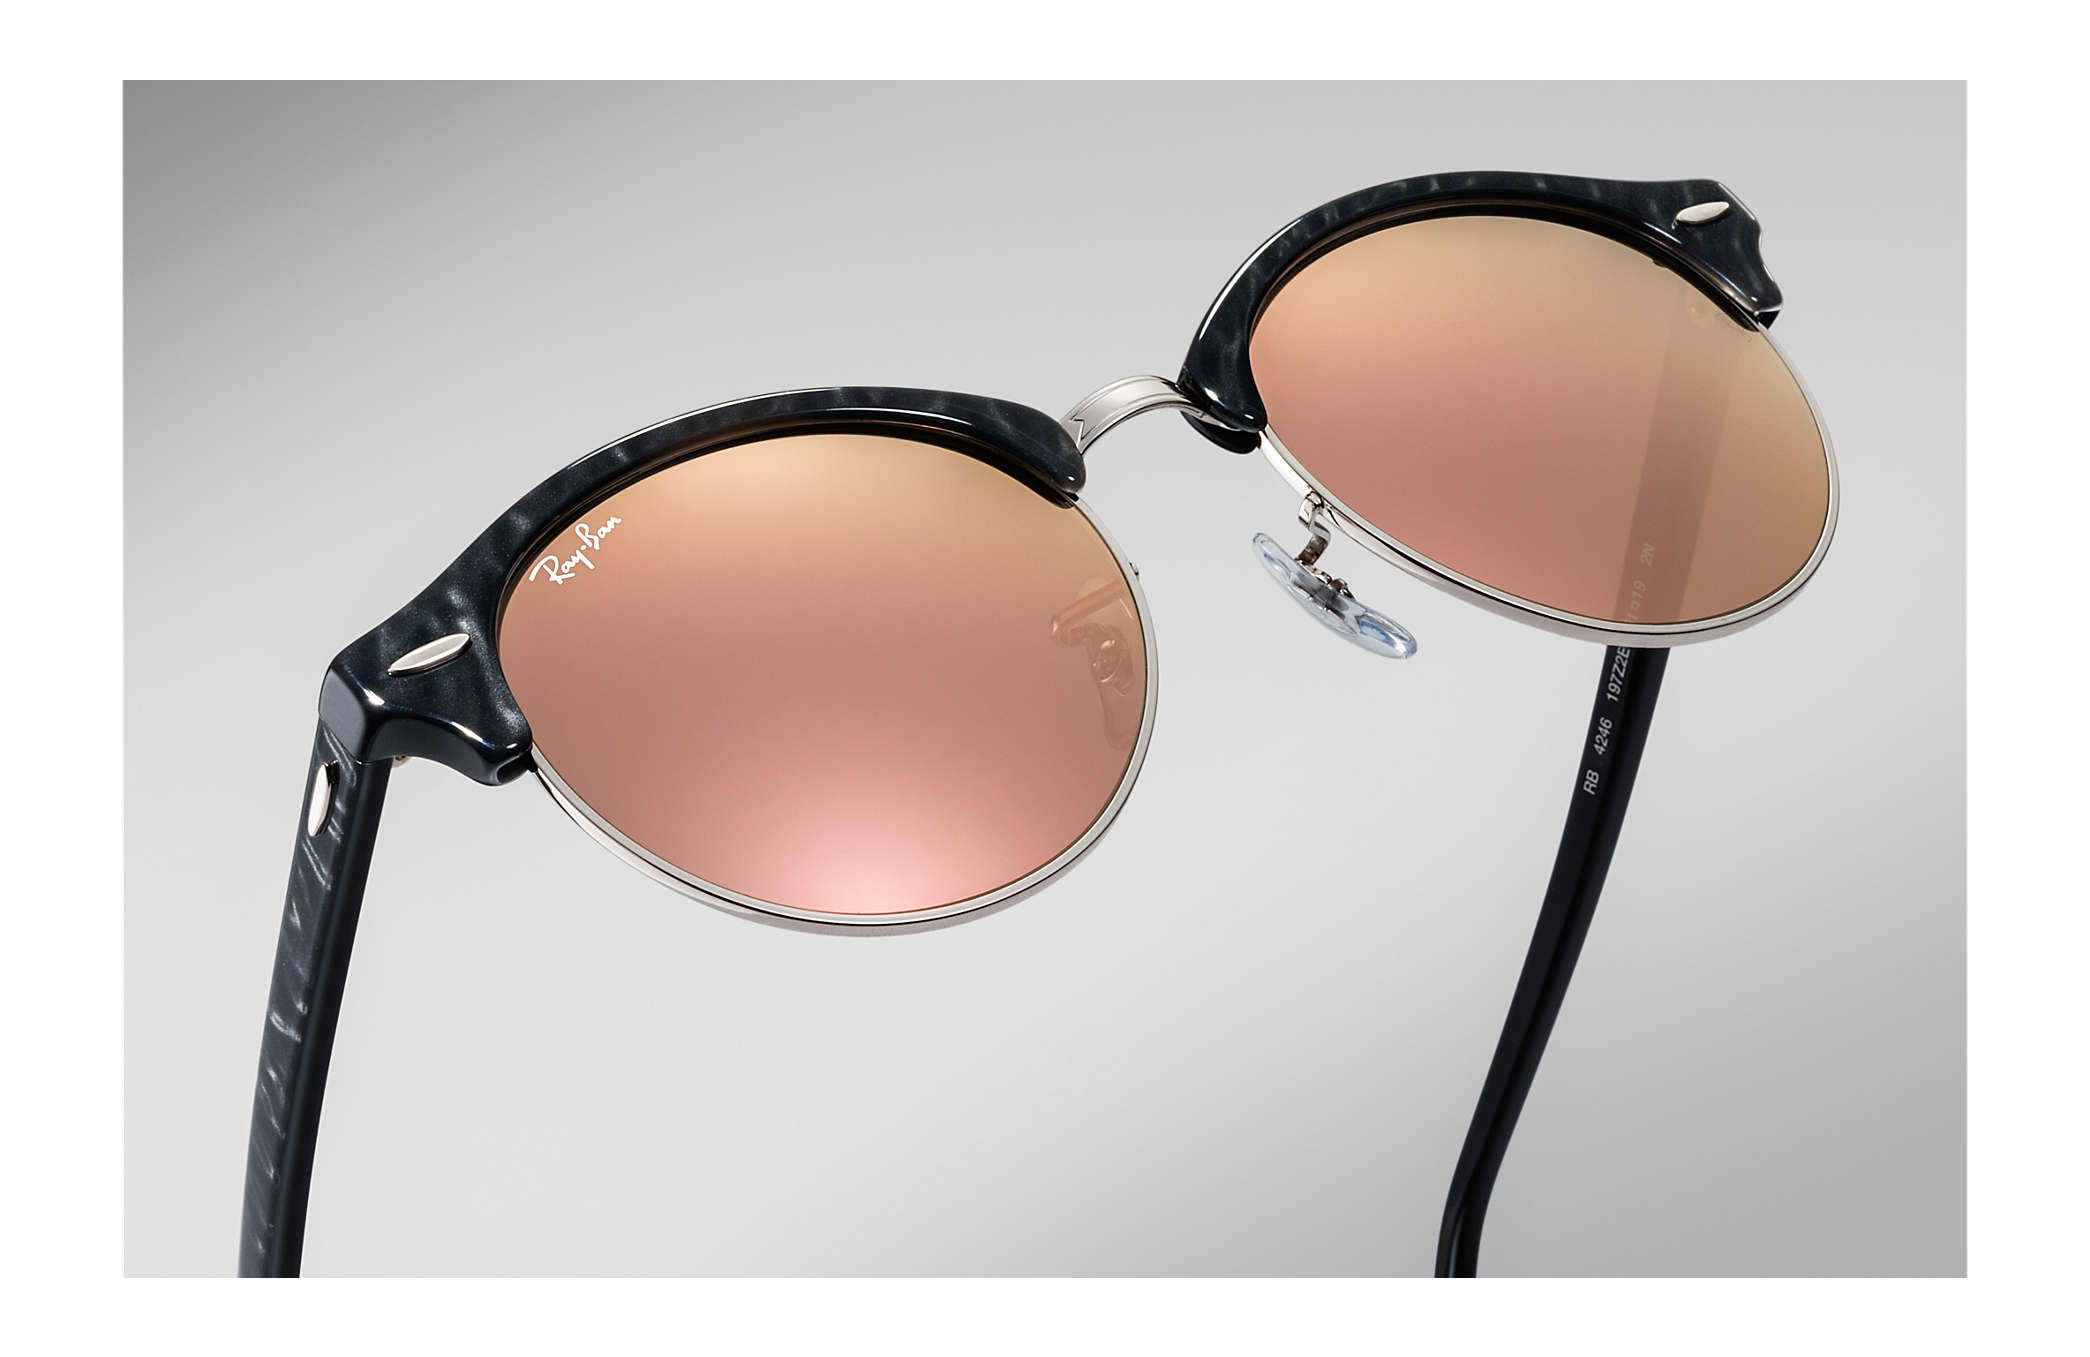 828c433d4 ... Ray-Ban 0RB4246-CLUBROUND FLASH LENSES Black,Silver; Black SUN ...